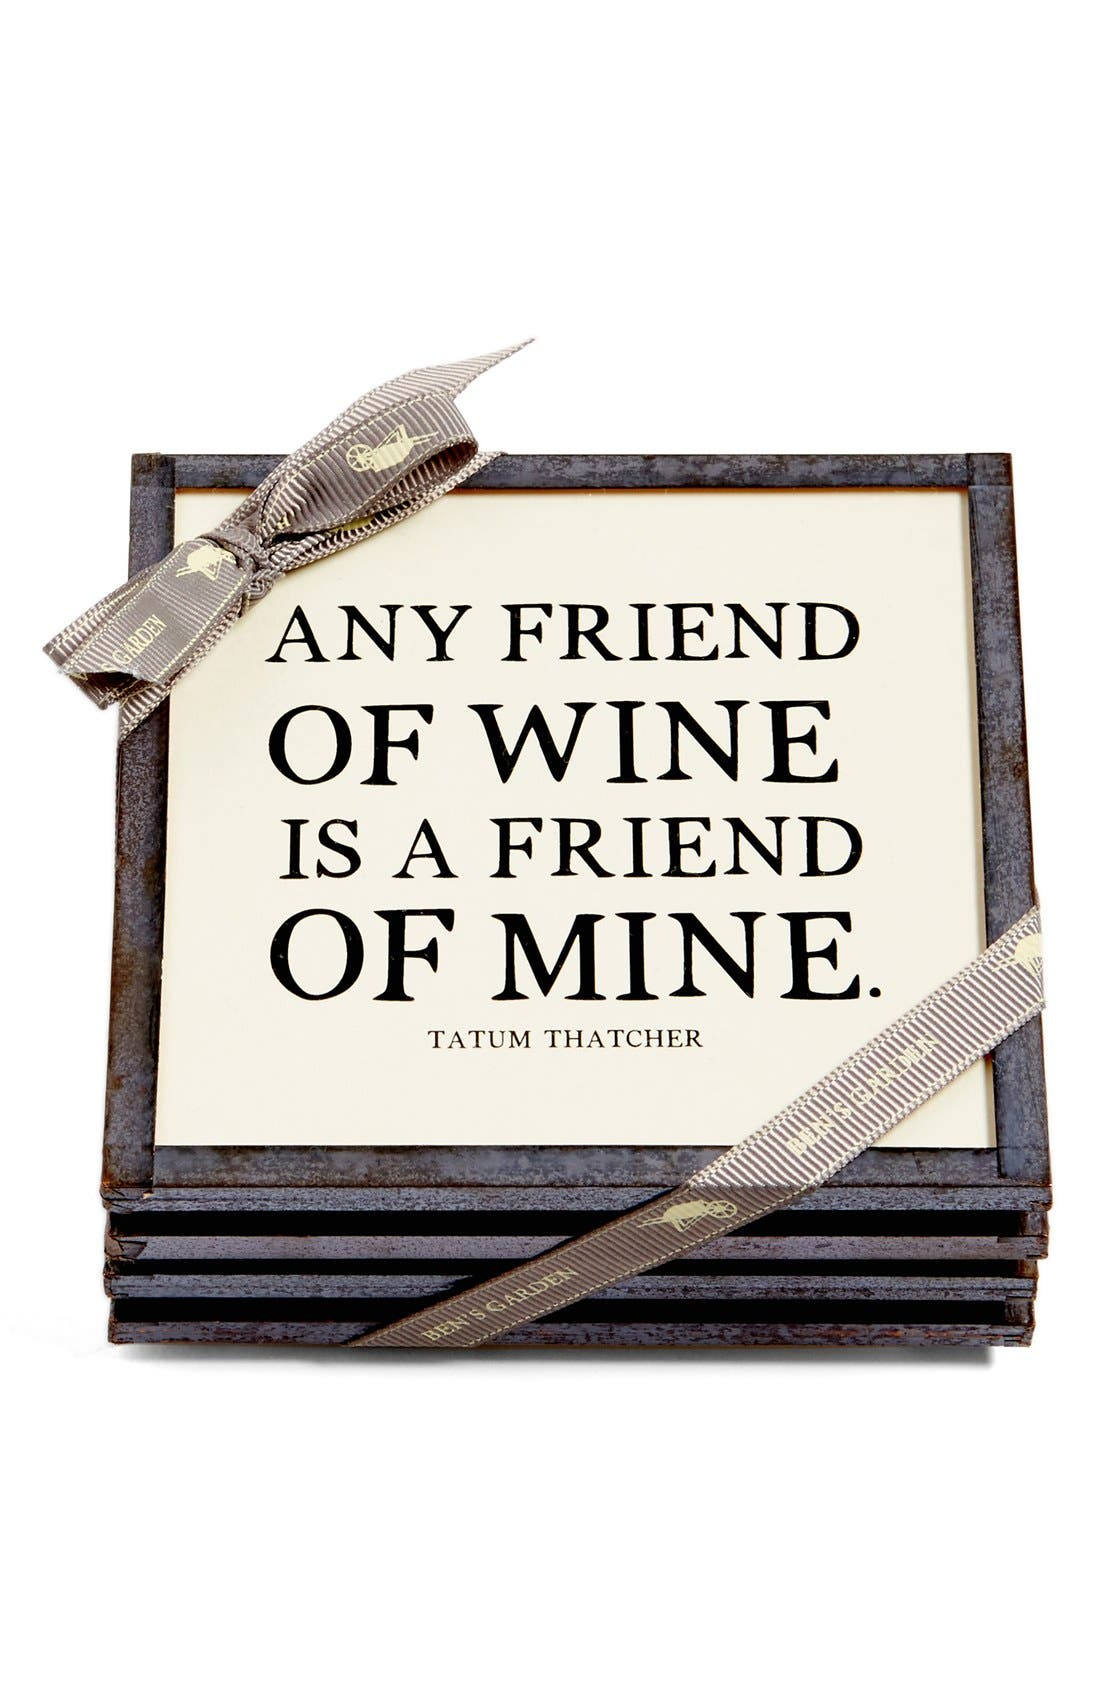 Ben's Garden 'Any Friend of Wine' Coasters (Set of 4)